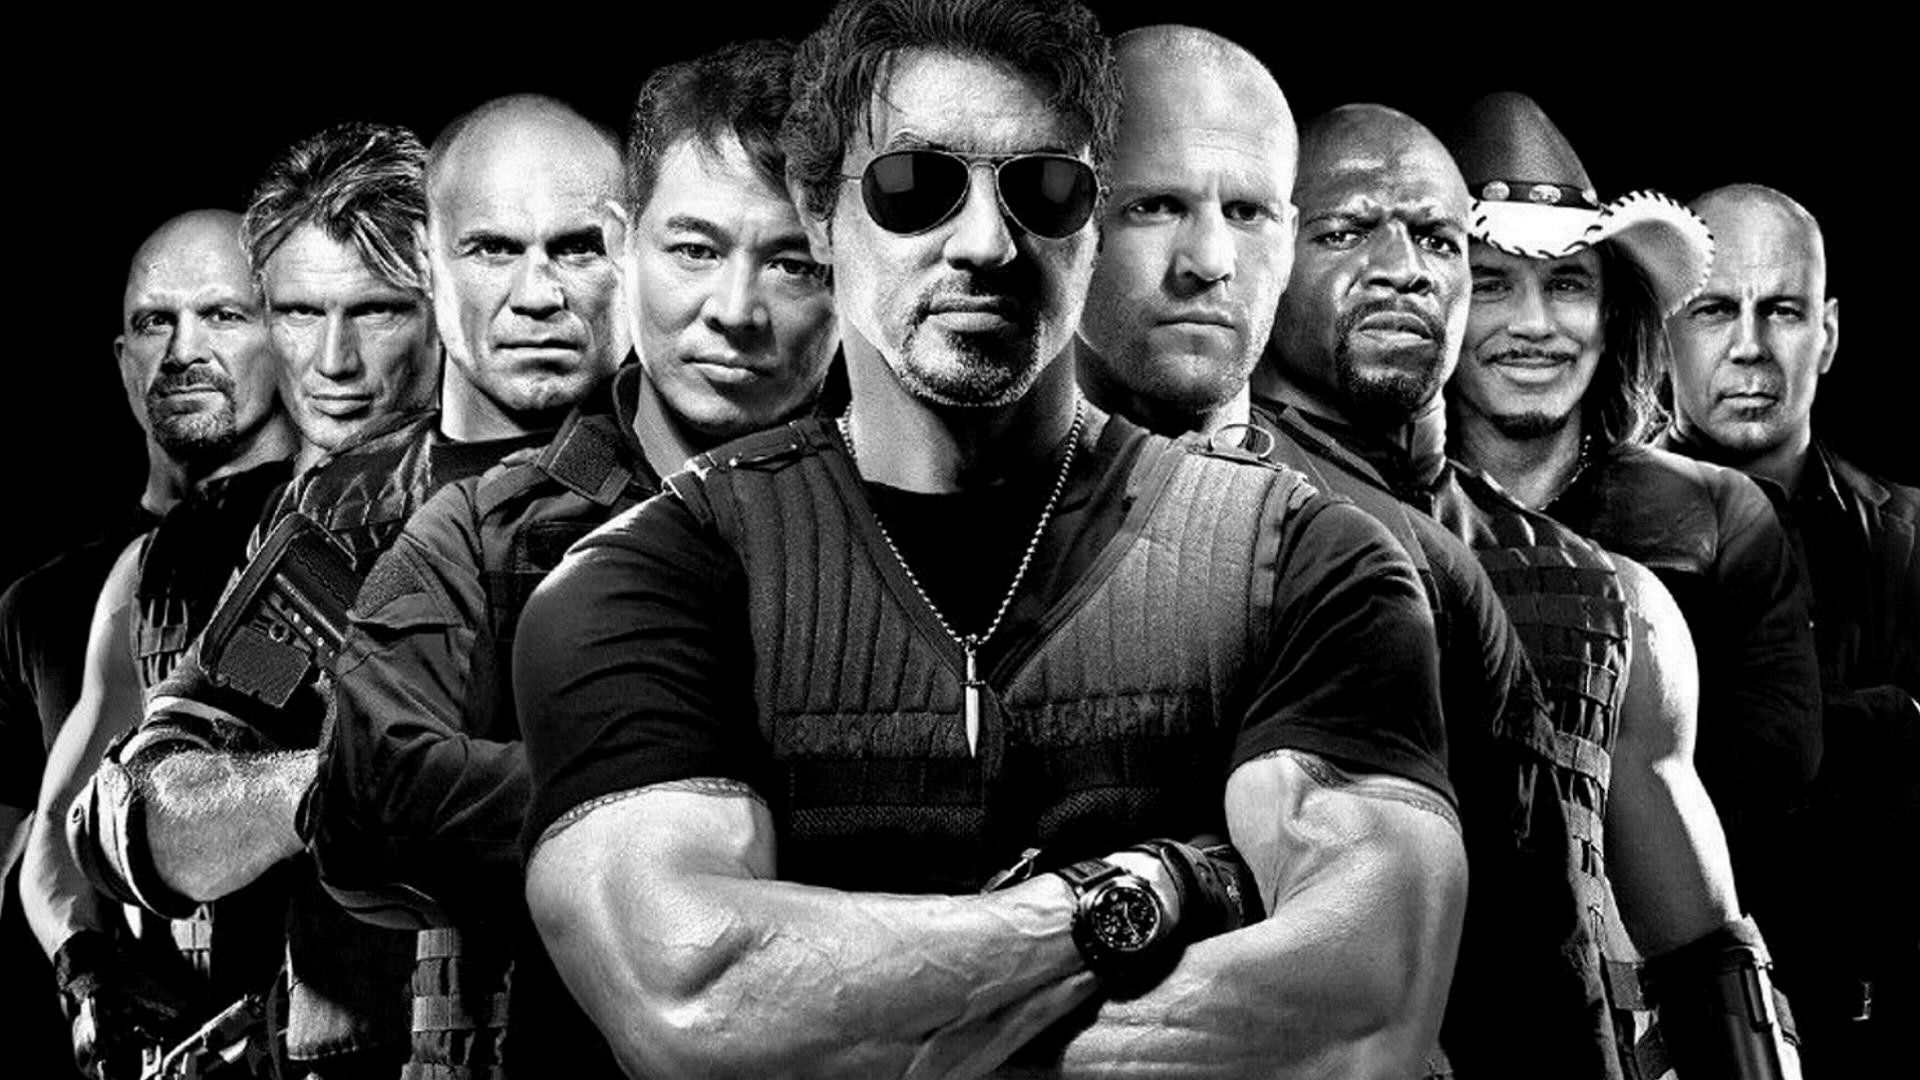 Sylvester Stallone In Expendables 2 Wallpapers: The Expendables Wallpapers Widescreen Full Hd 1080p